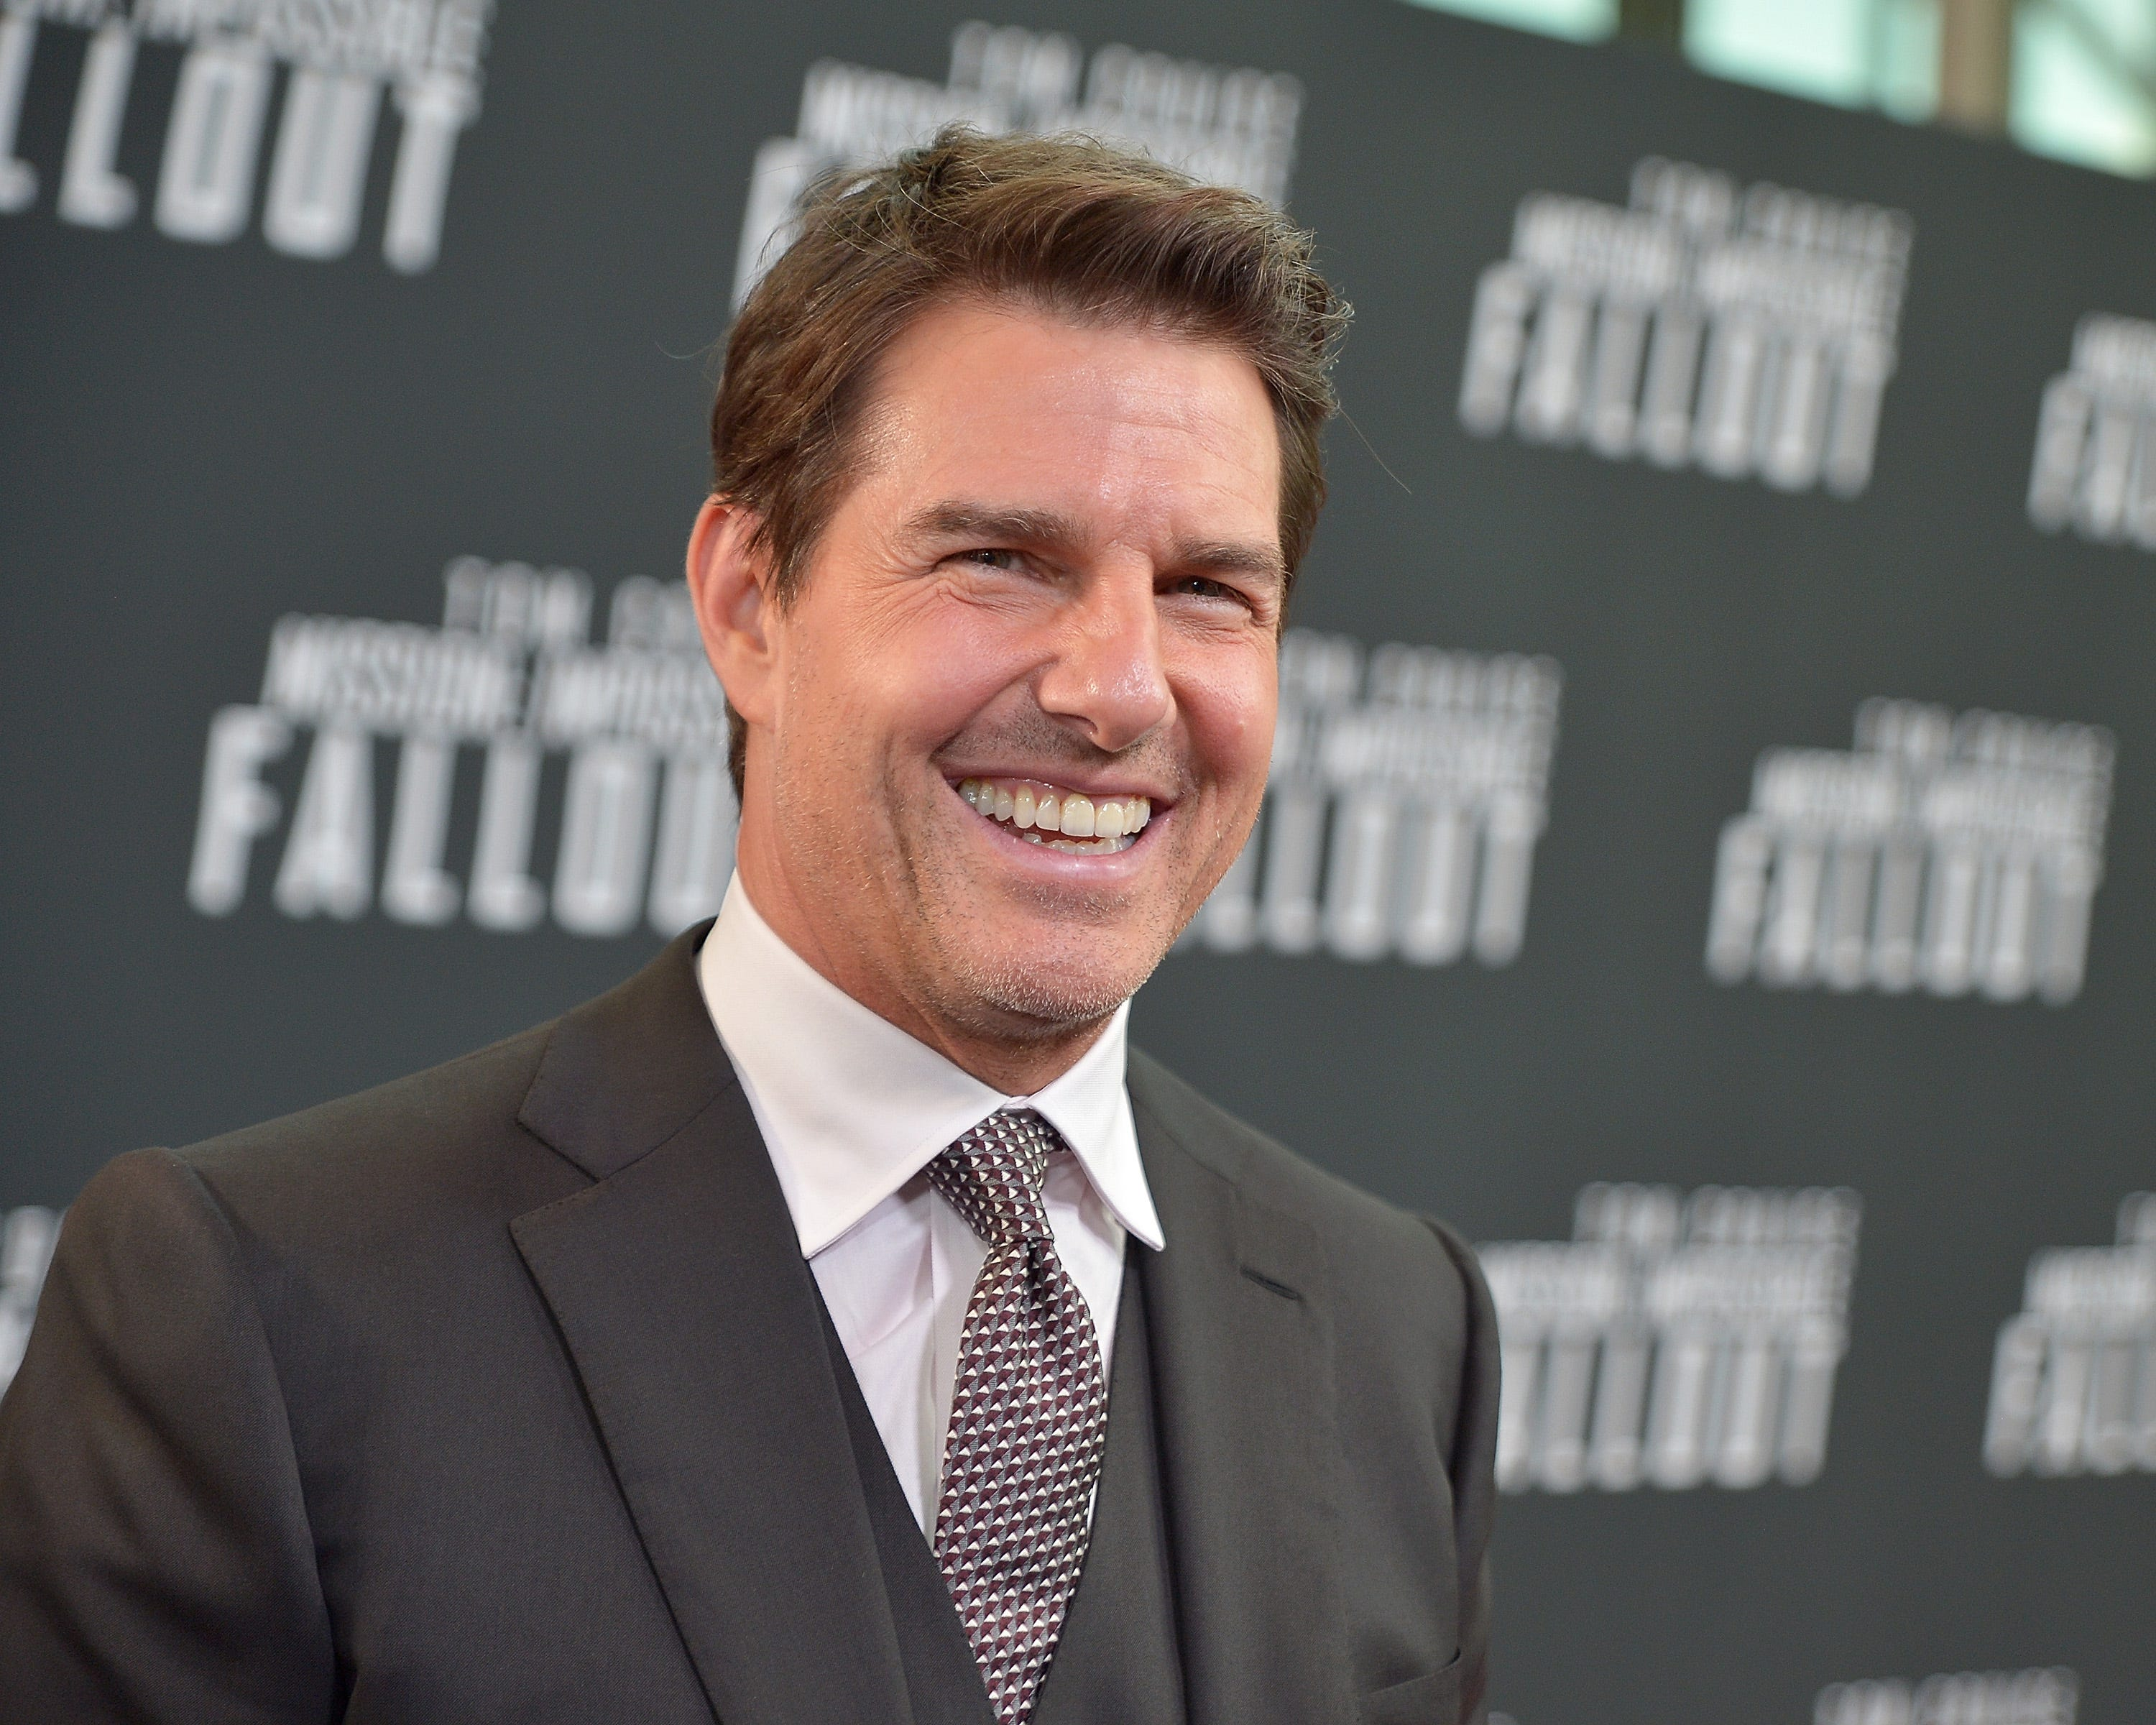 Tom Cruise sits on speeding train for 'Mission: Impossible' stunt. Passing Norwegian motorists freak out.